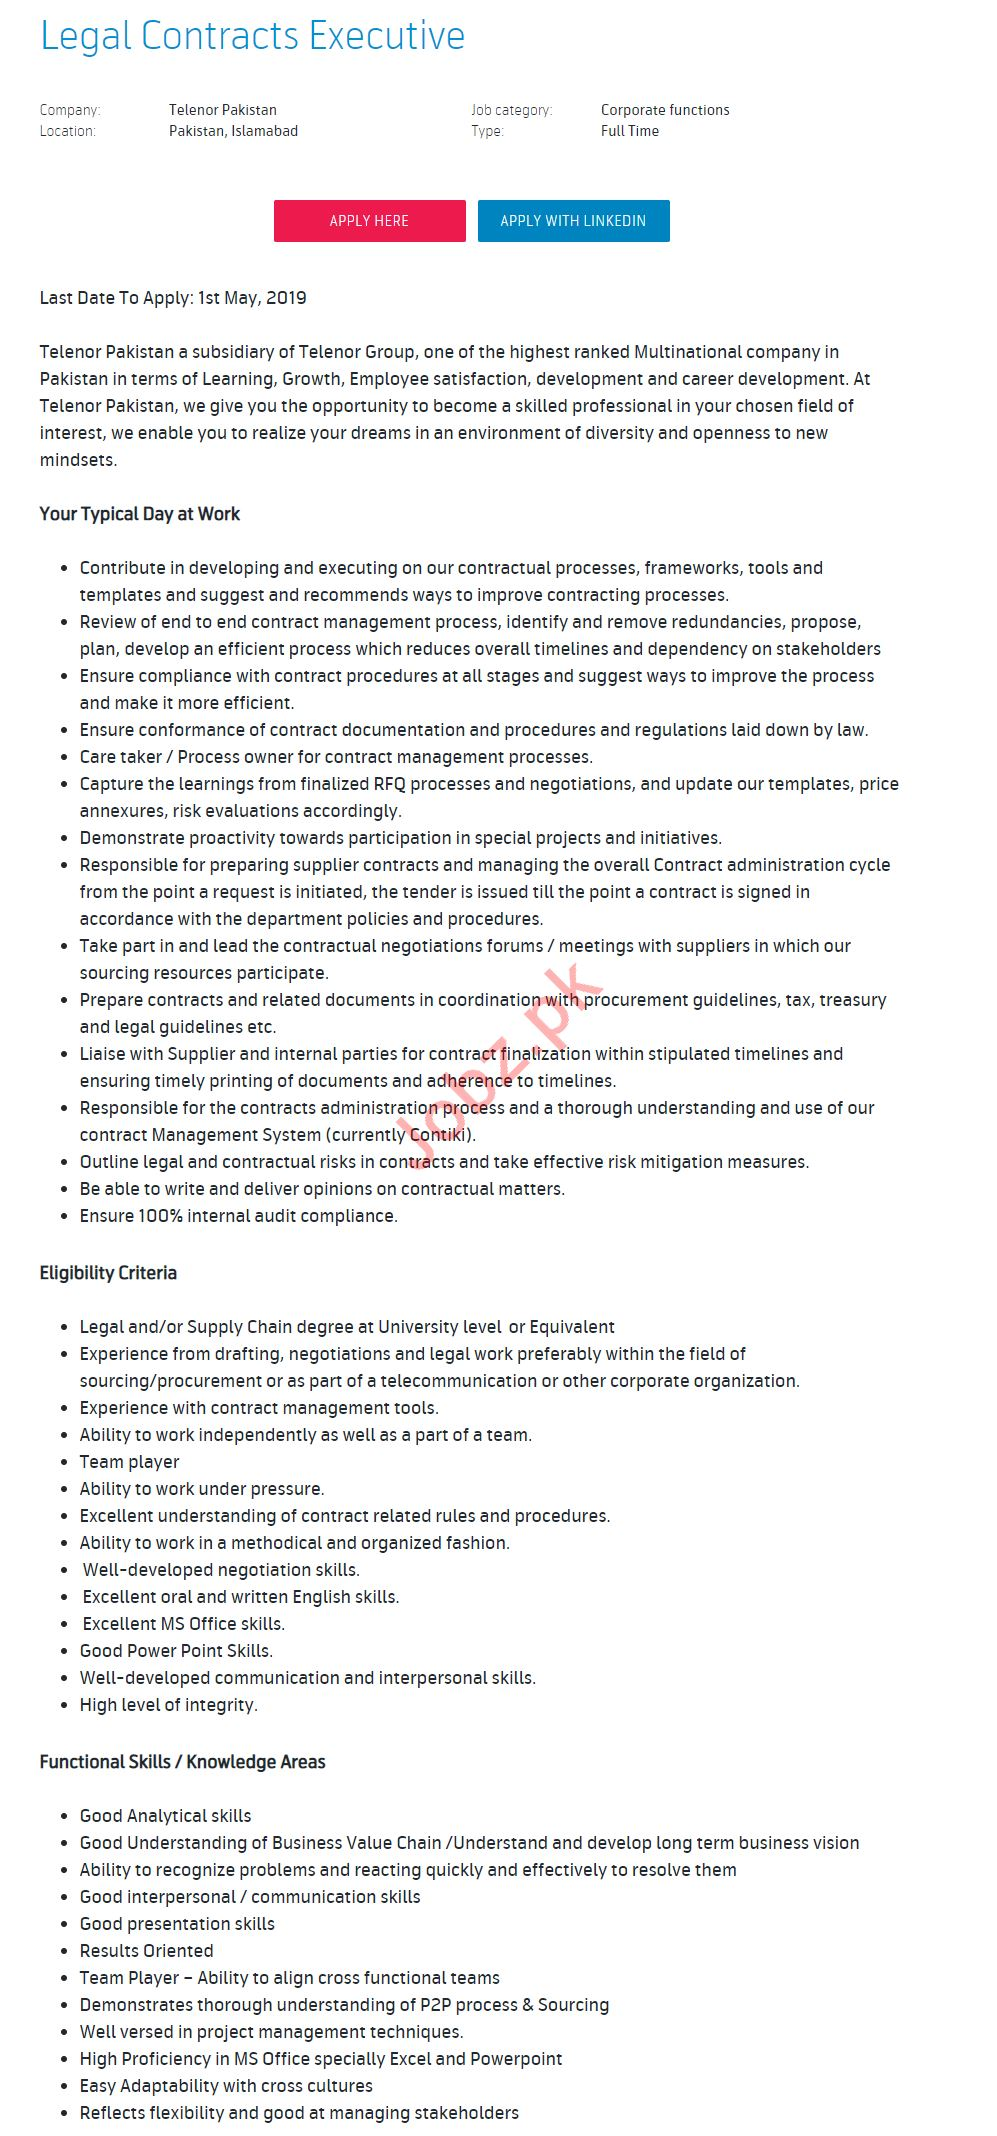 Legal Contracts Executive Jobs in Telenor Pakistan